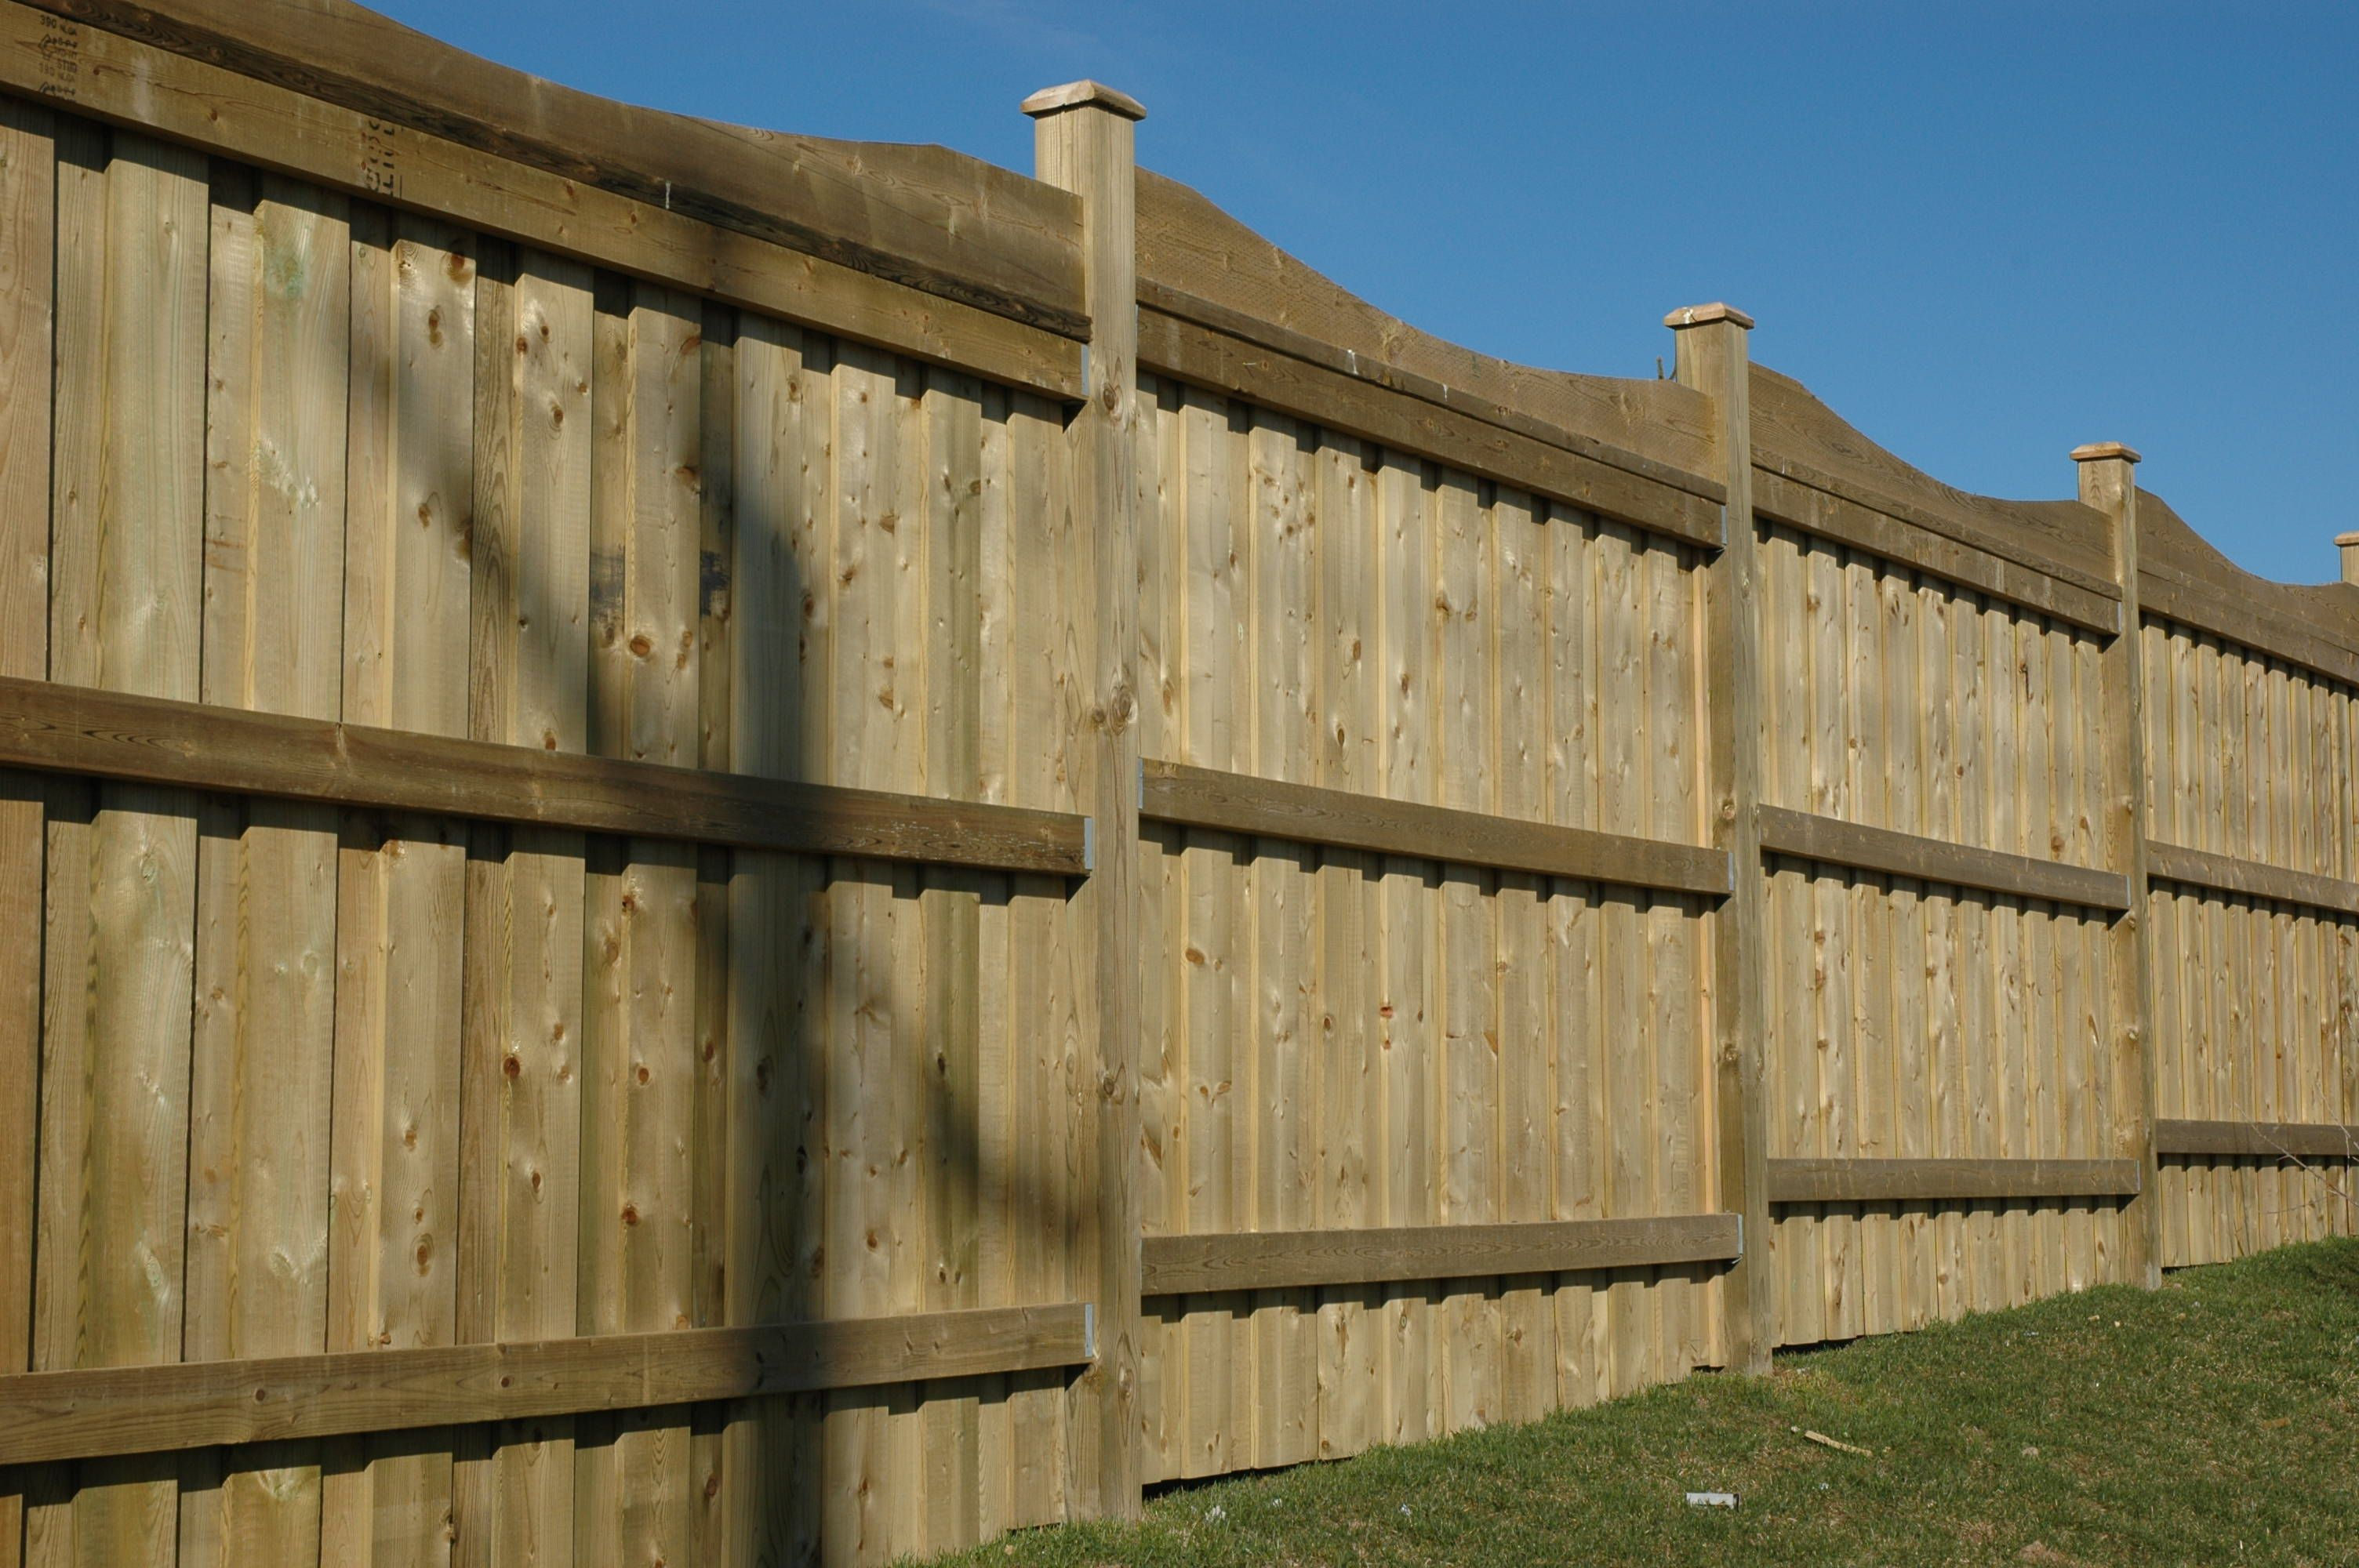 Wooden fence designs download wallpaper